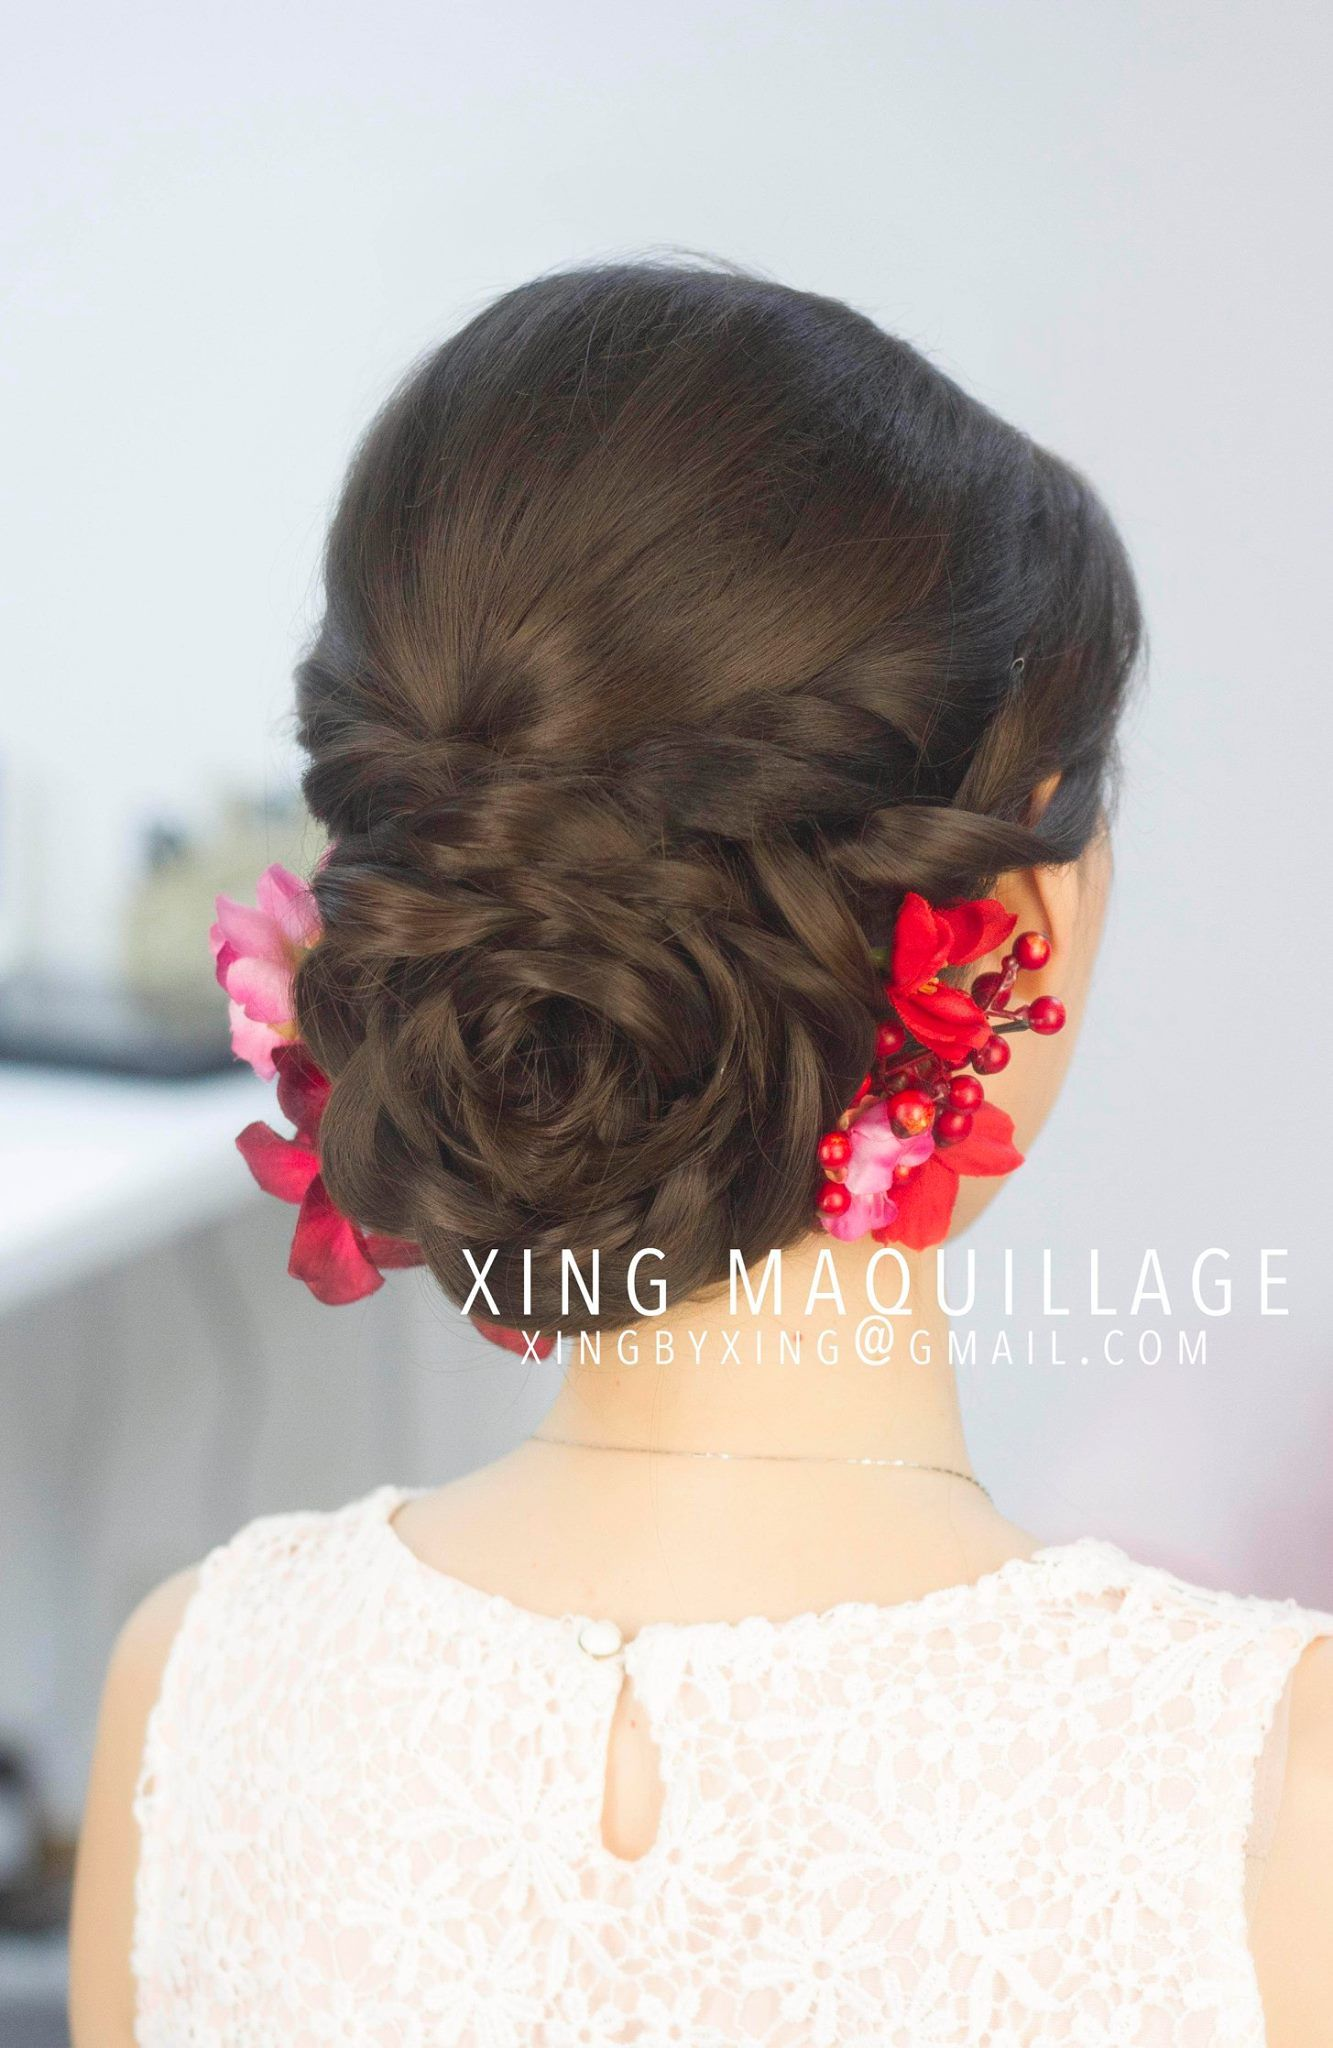 Braids up do bun Asian wedding hair Chinese Hair